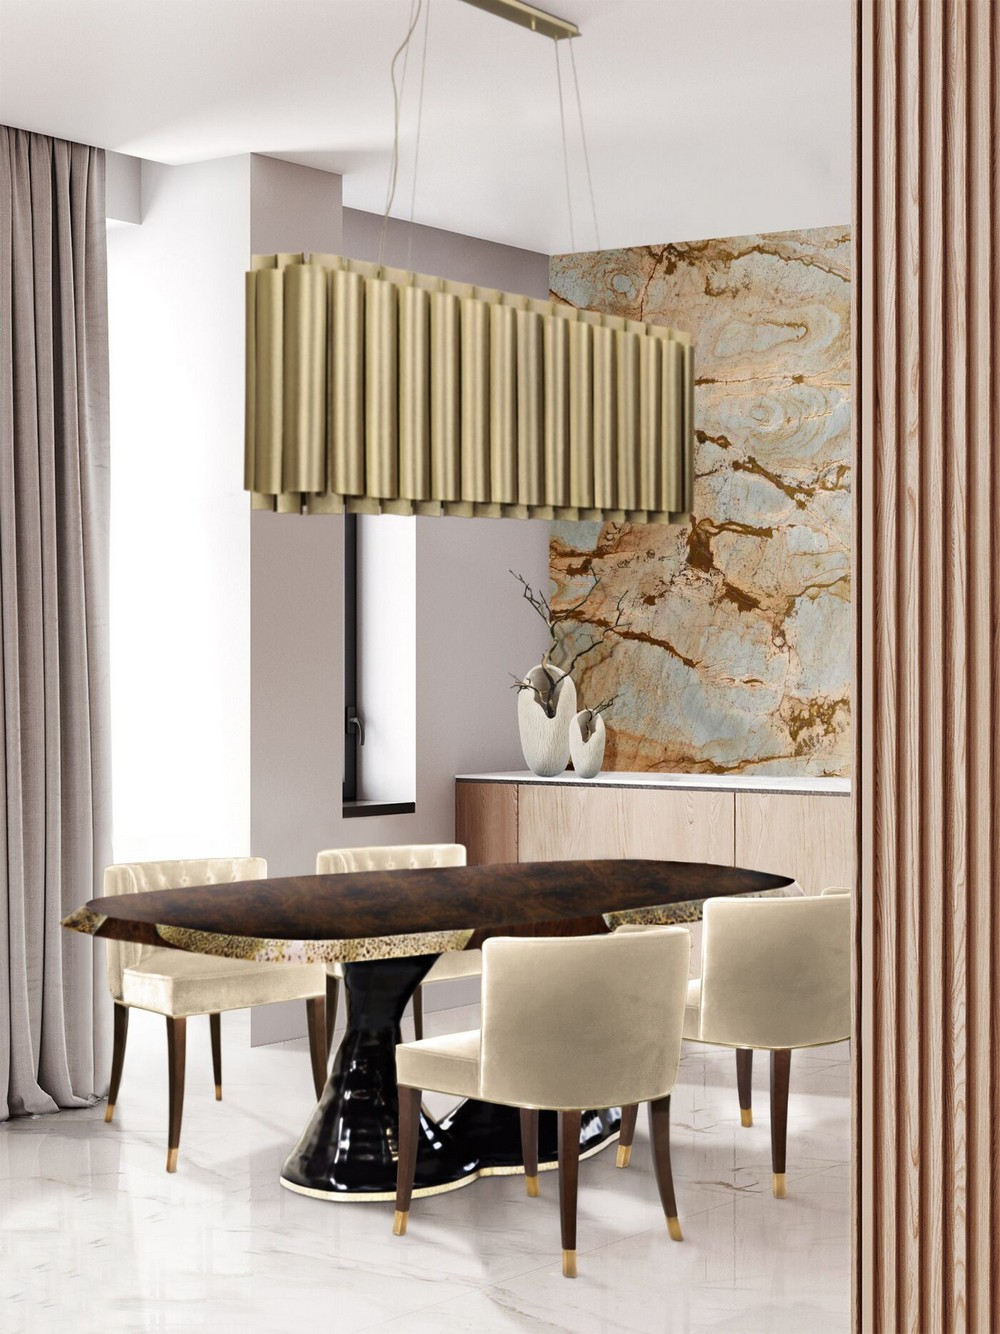 7 Dining Room Chandeliers That Will Spark A Luxury Atmosphere dining room chandeliers 7 Dining Room Chandeliers That Will Spark A Luxury Atmosphere arum